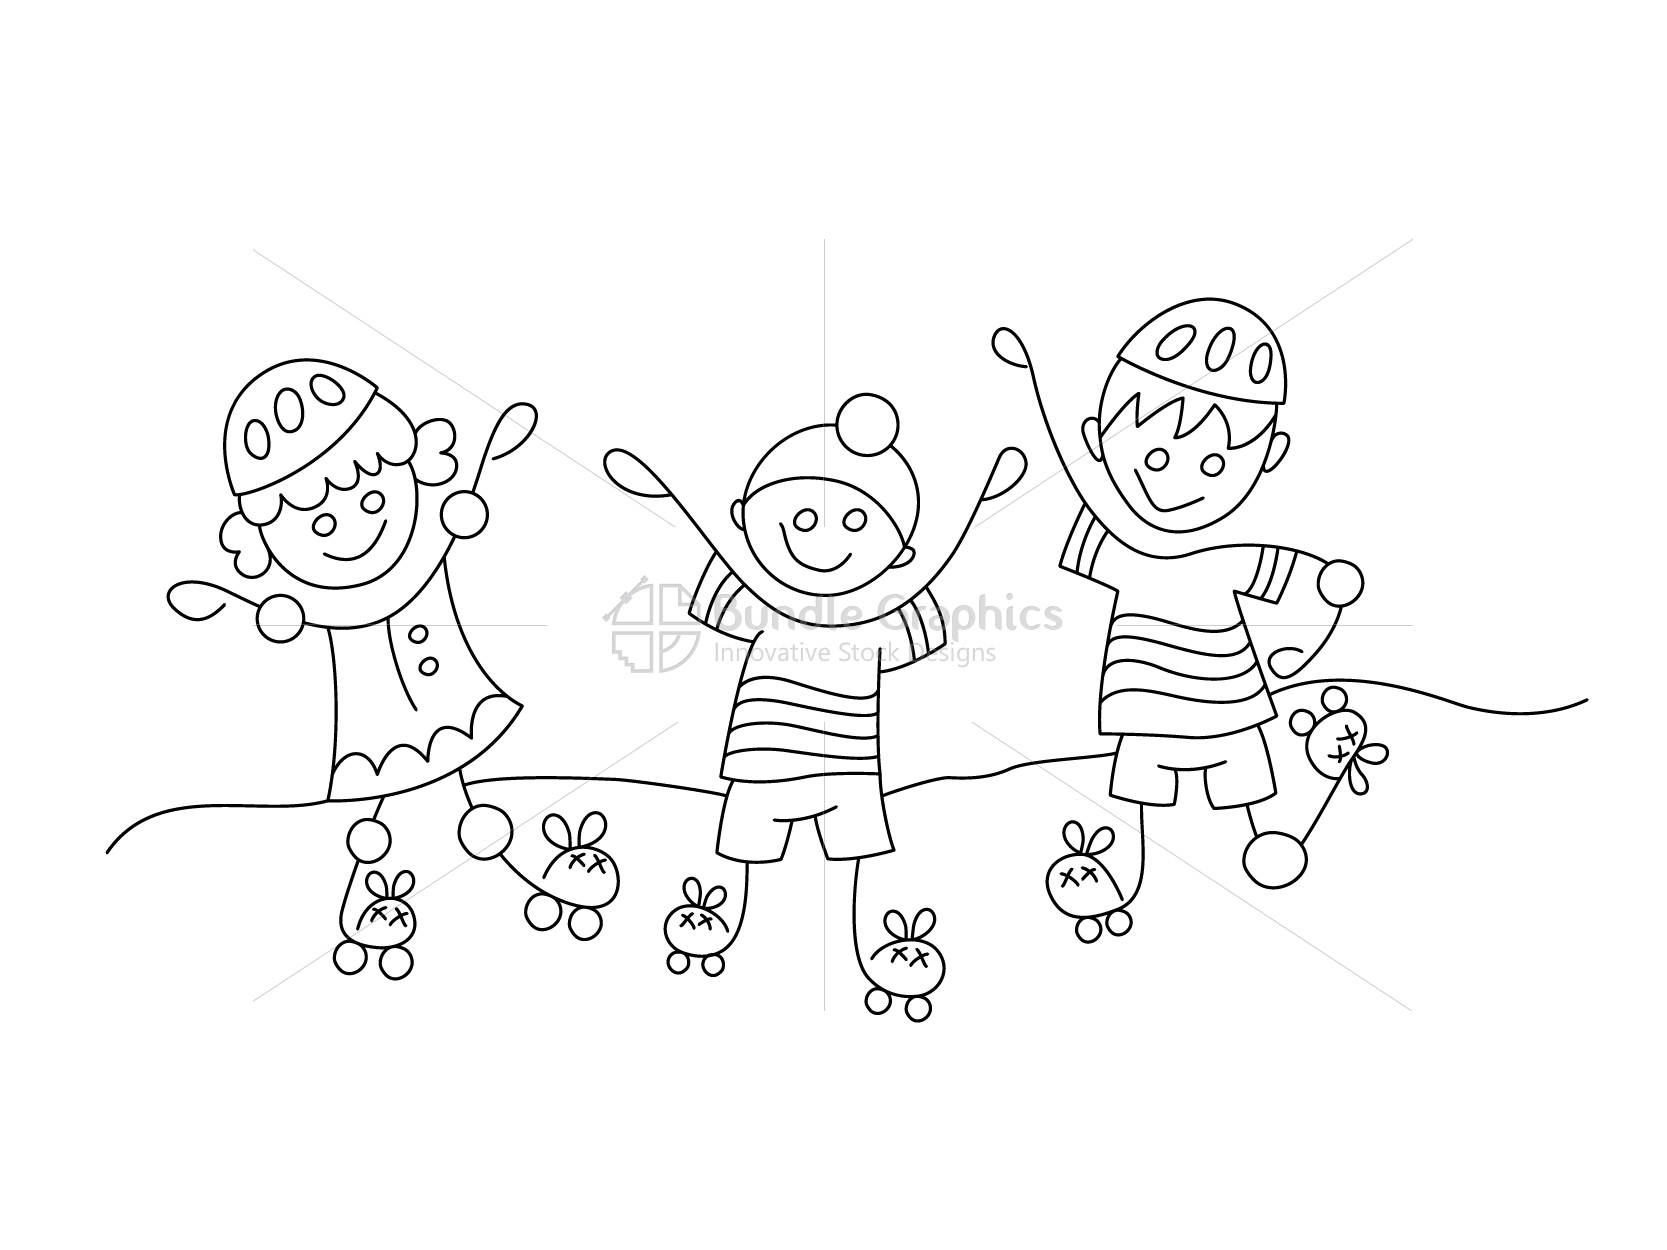 Kids Roller Skating Graphical Illustration example image 2